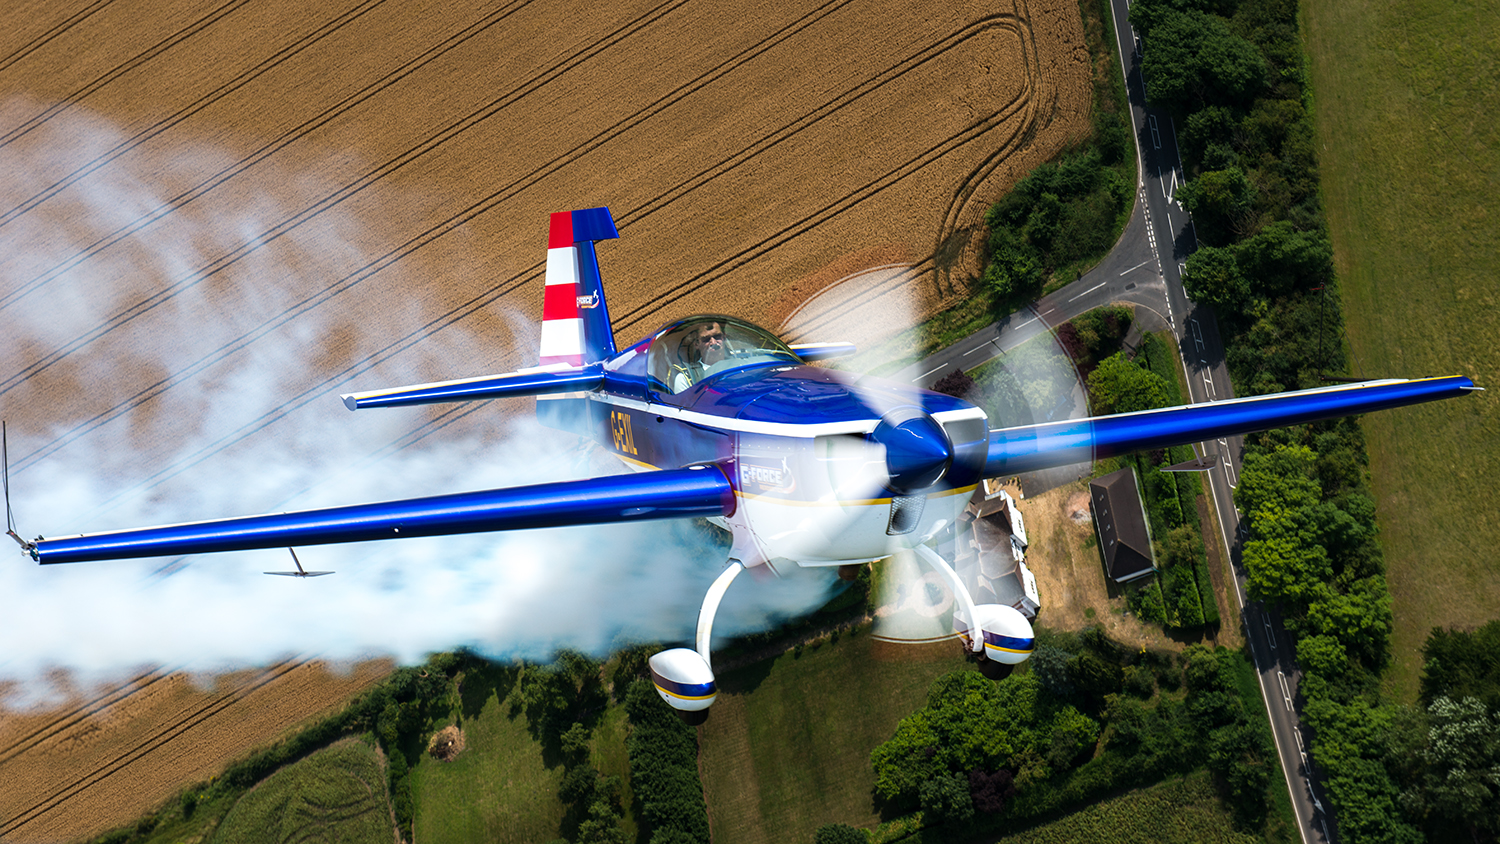 Now it's Chris' turn to show off the nose of his blue Extra as we fly over a farm house in rural England.